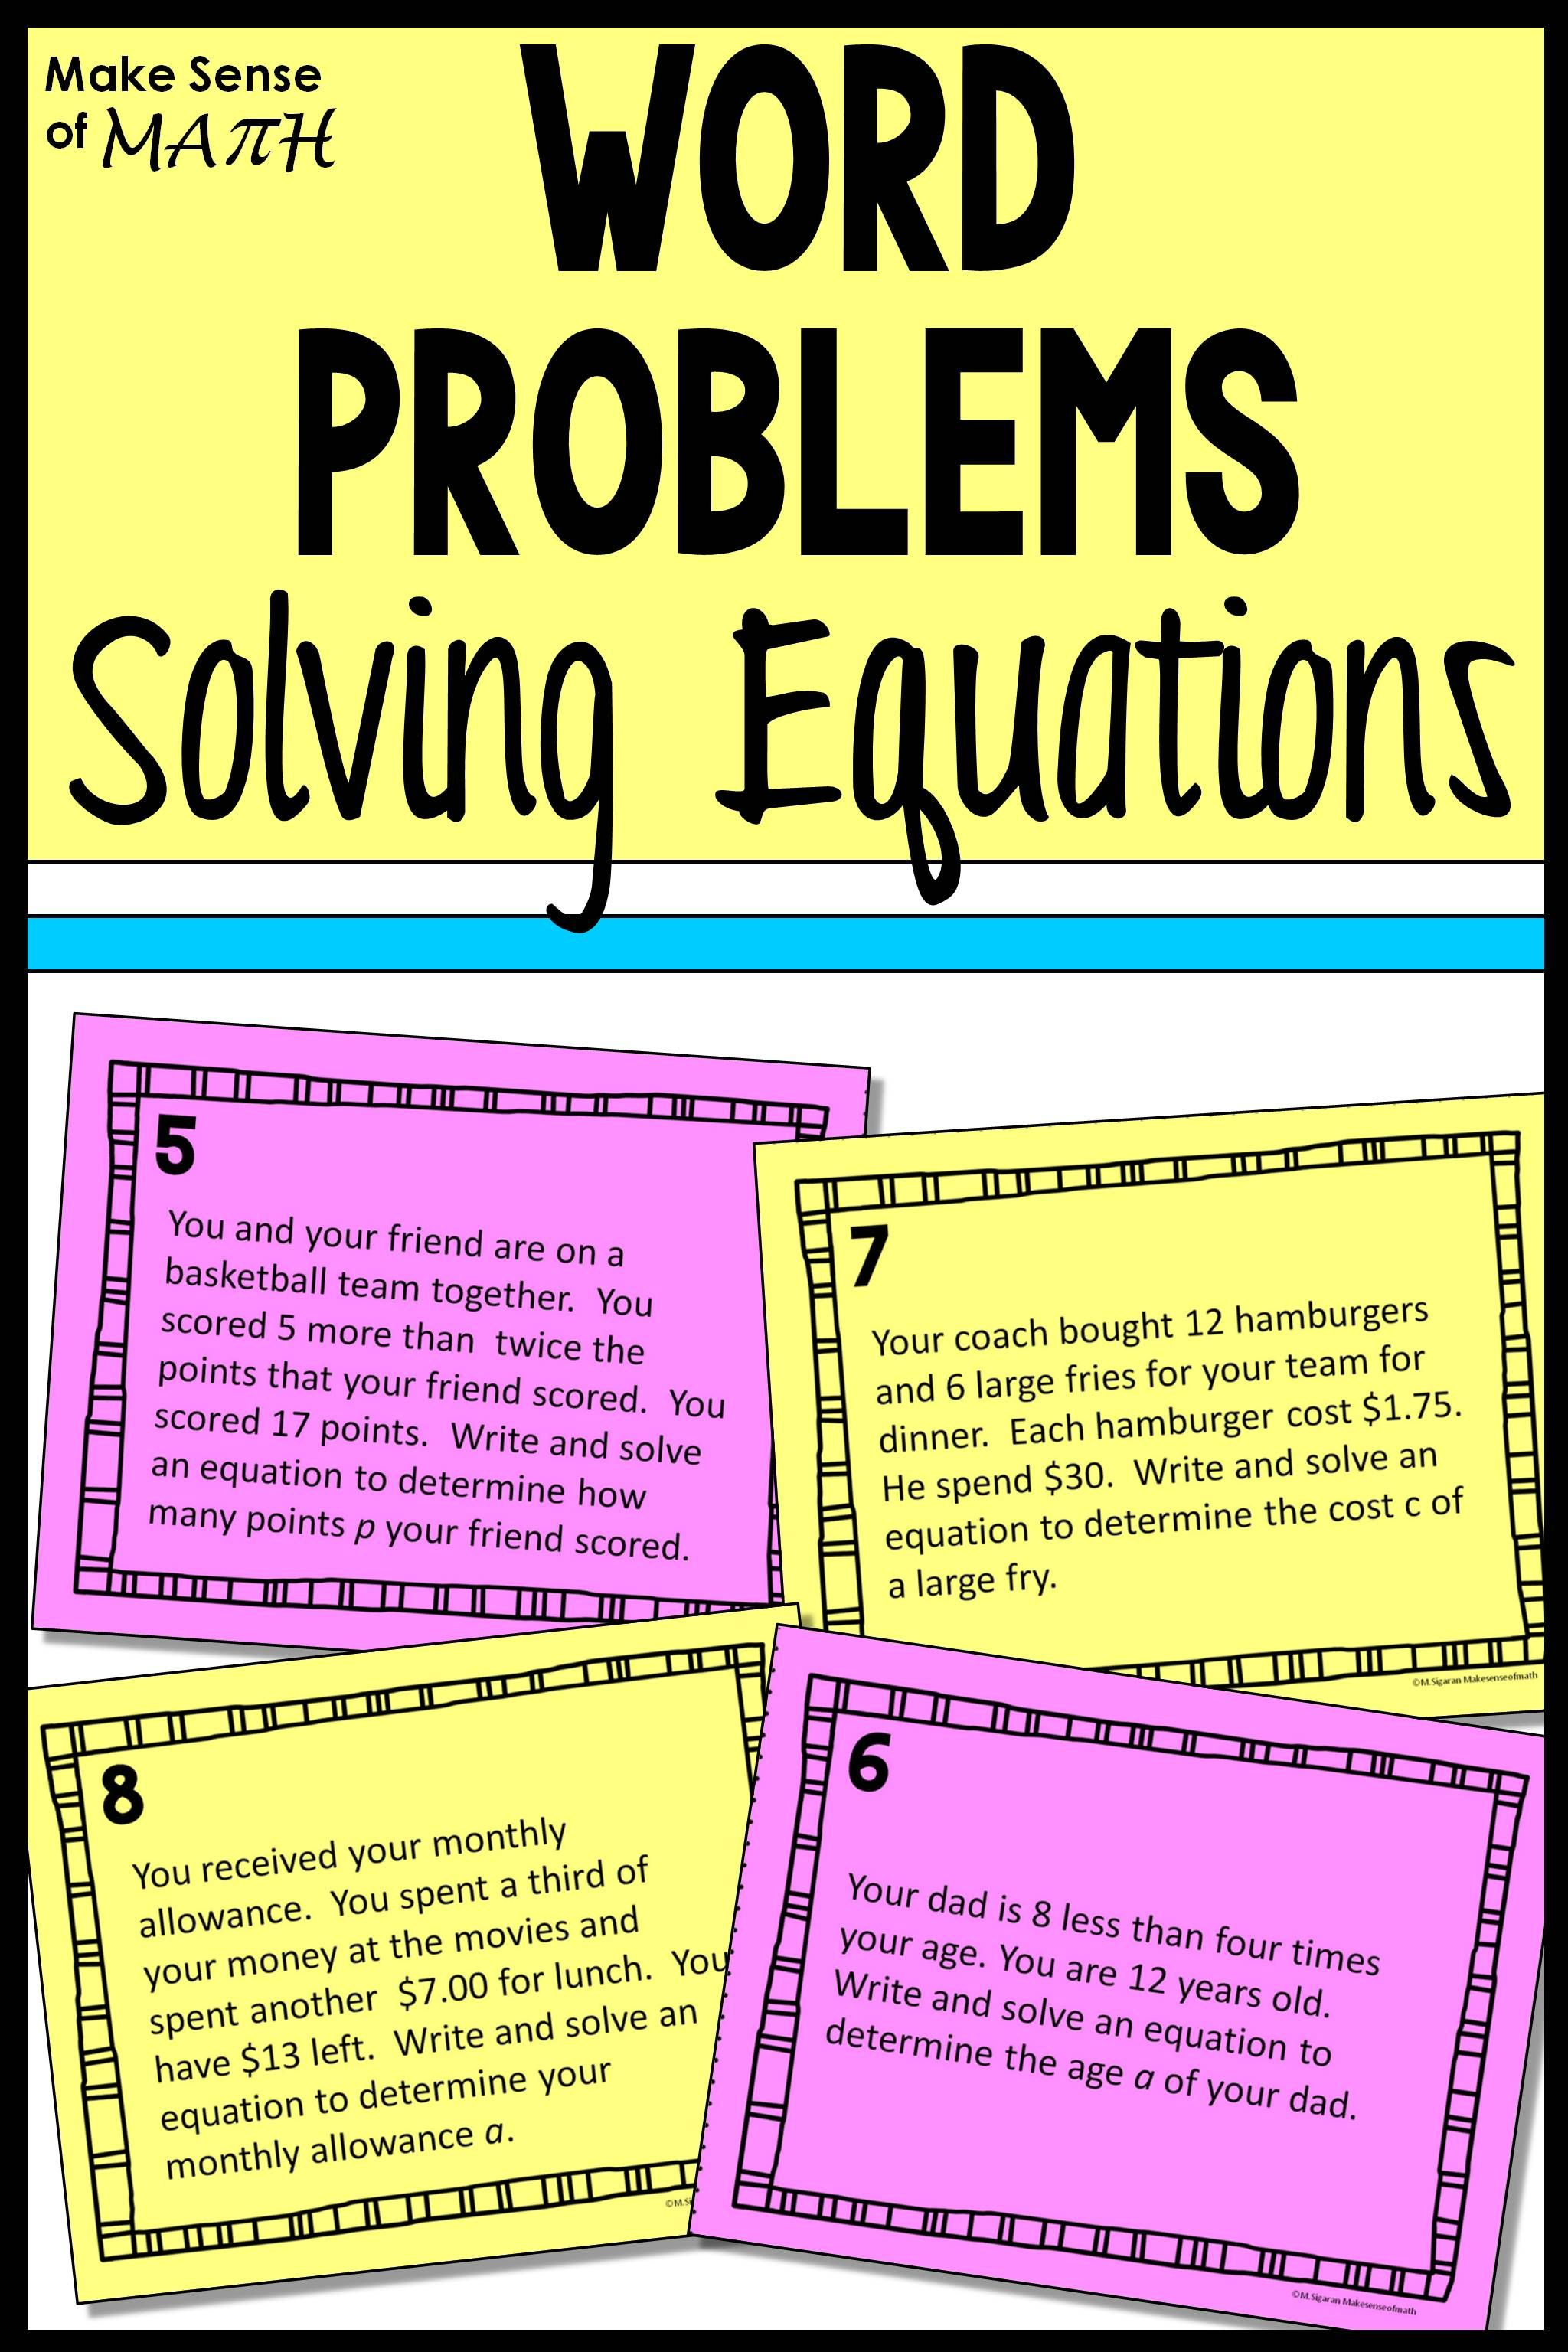 Solving Equations Word Problems Word Problems Solving Equations Math Word Problems